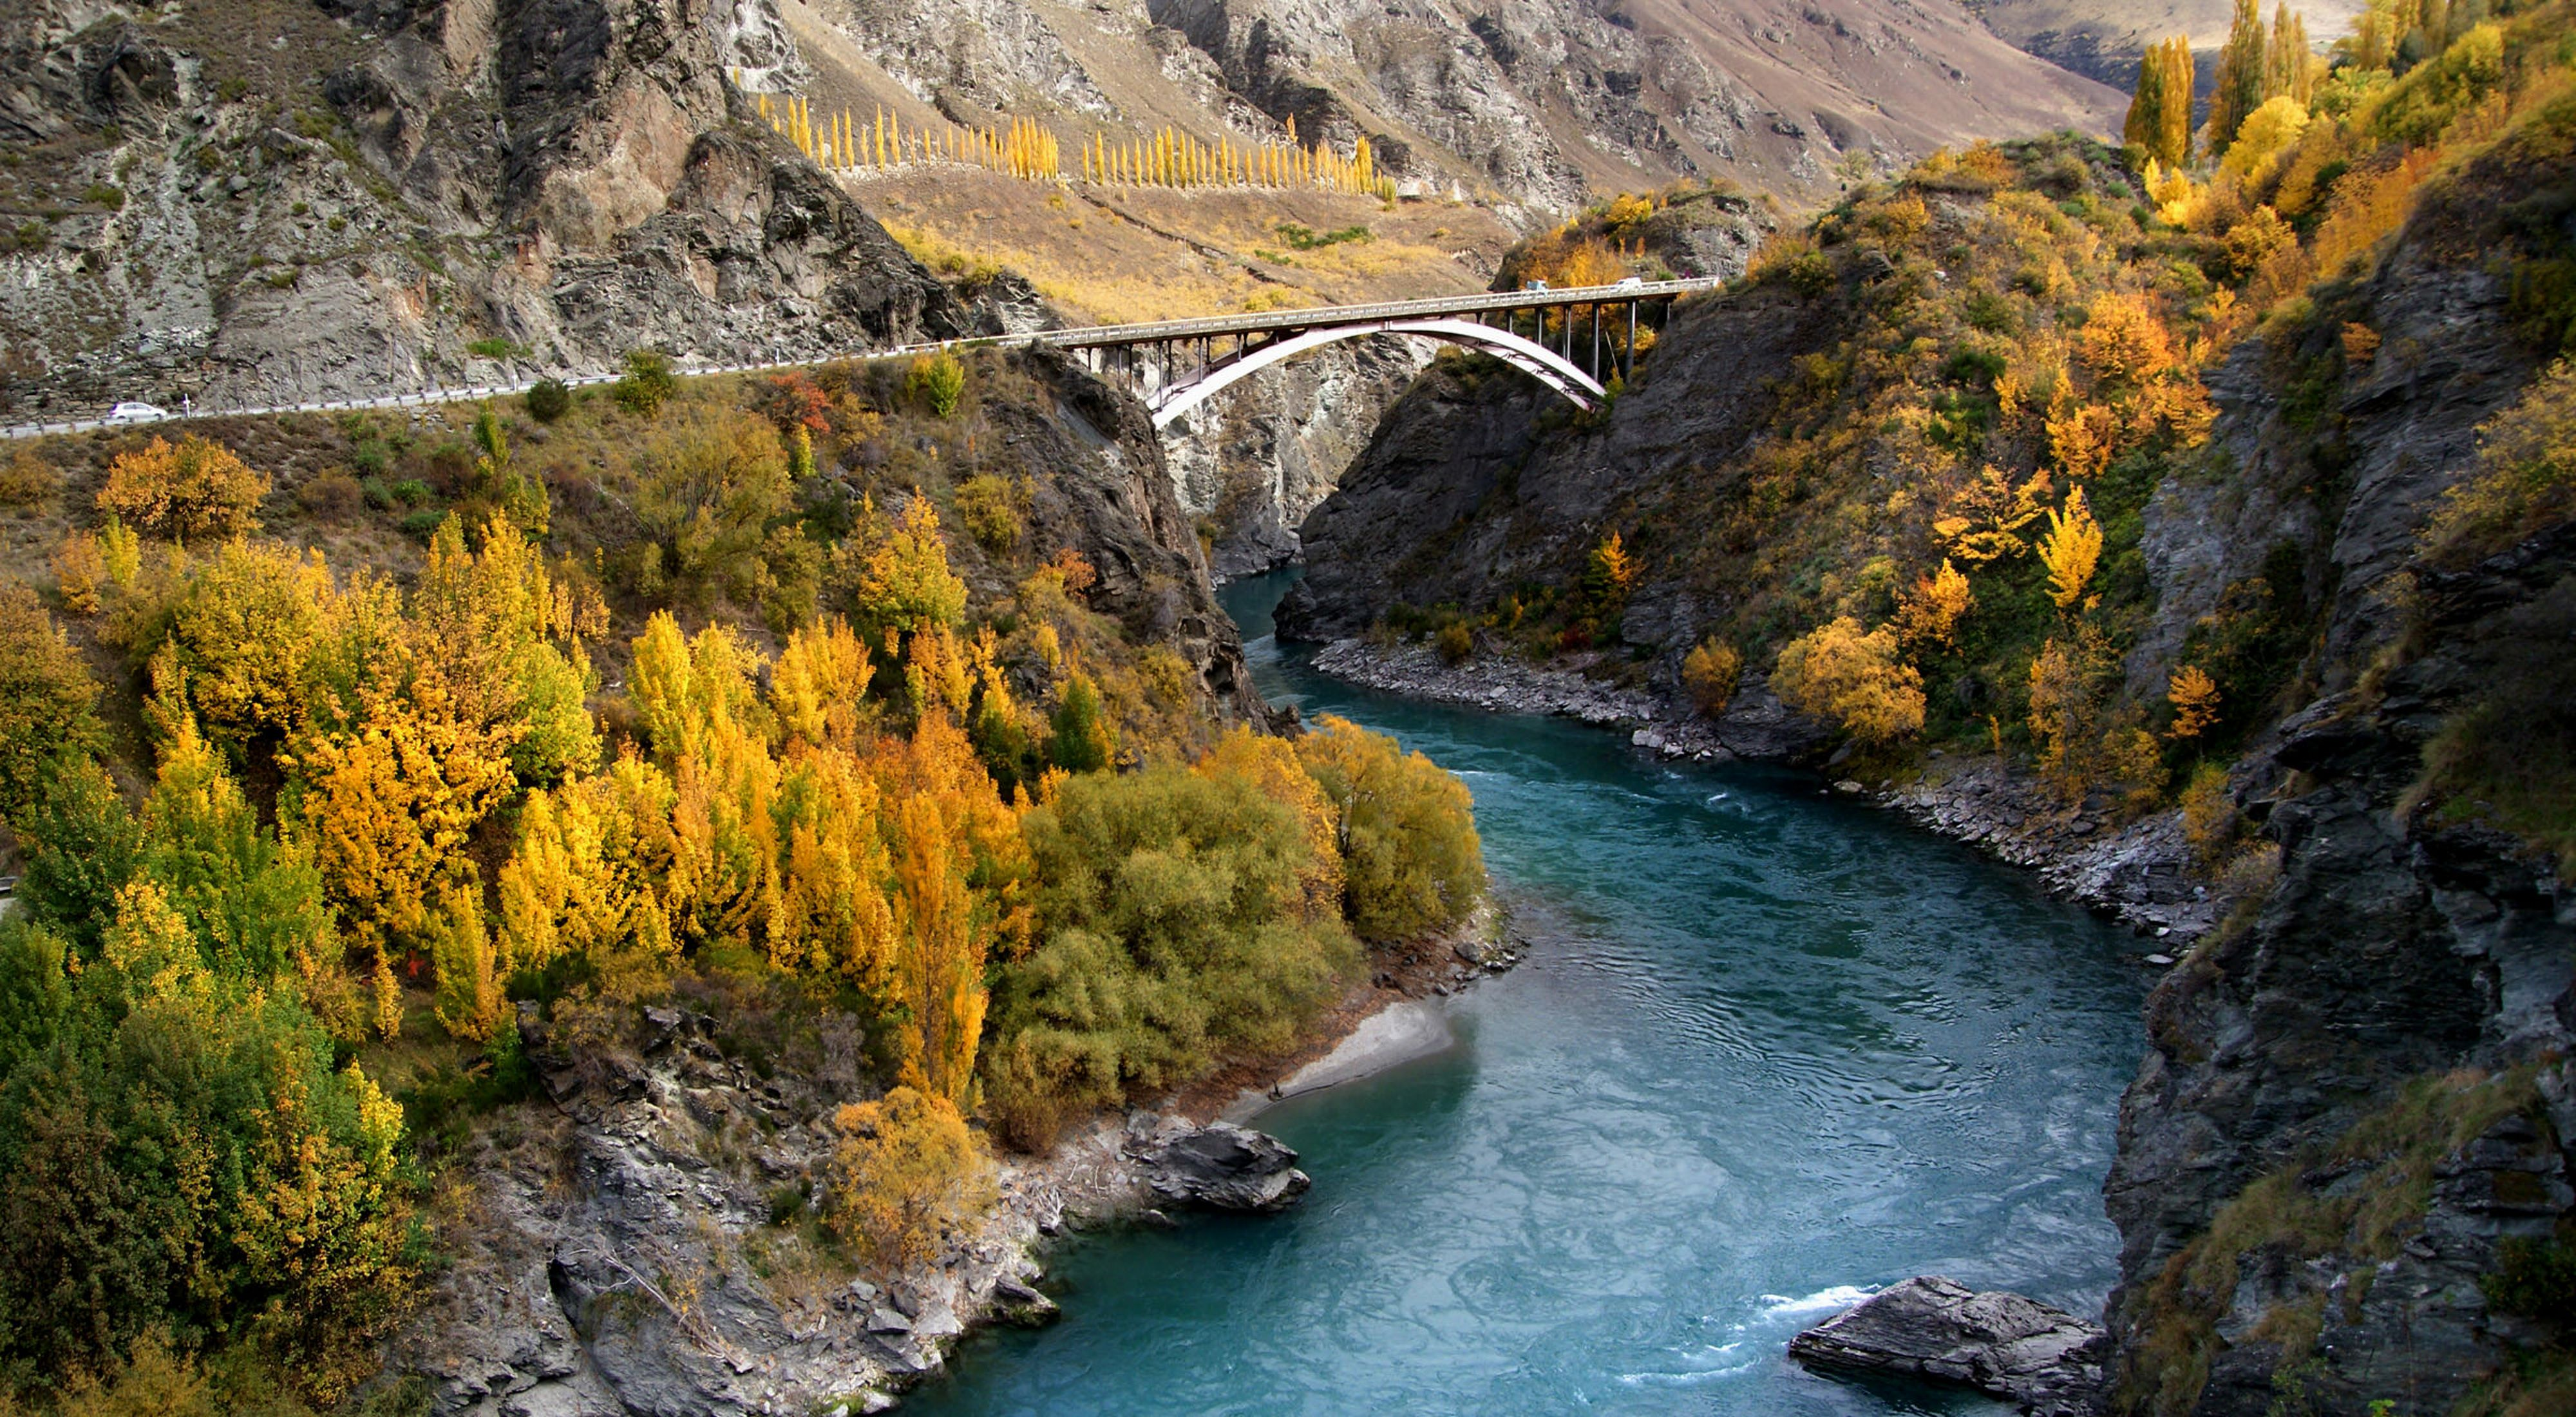 The Kawarau River flows through the gorge. The Kawarau Gorge is a located in Central Otago, in the South Island of New Zealand.